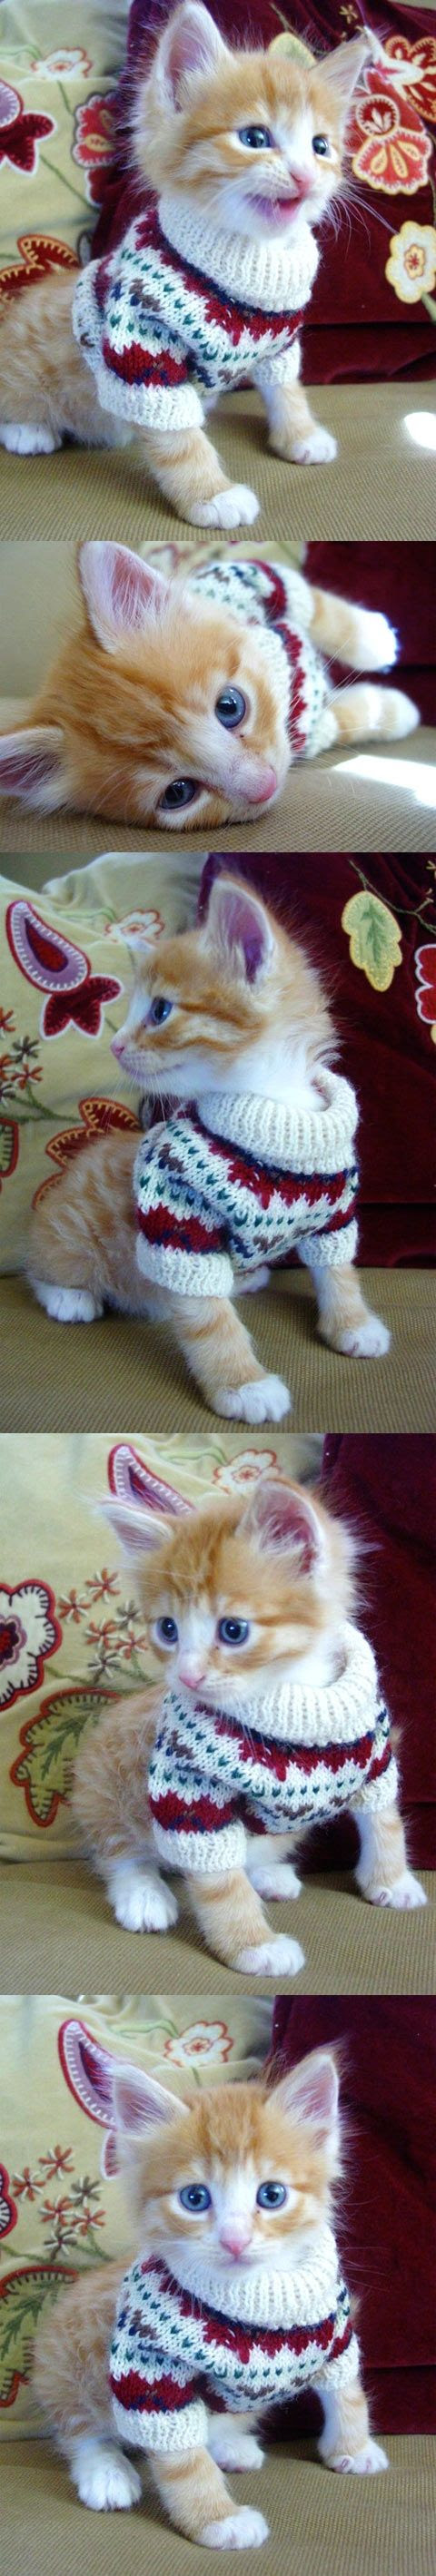 Kitten in a fair isle sweater.